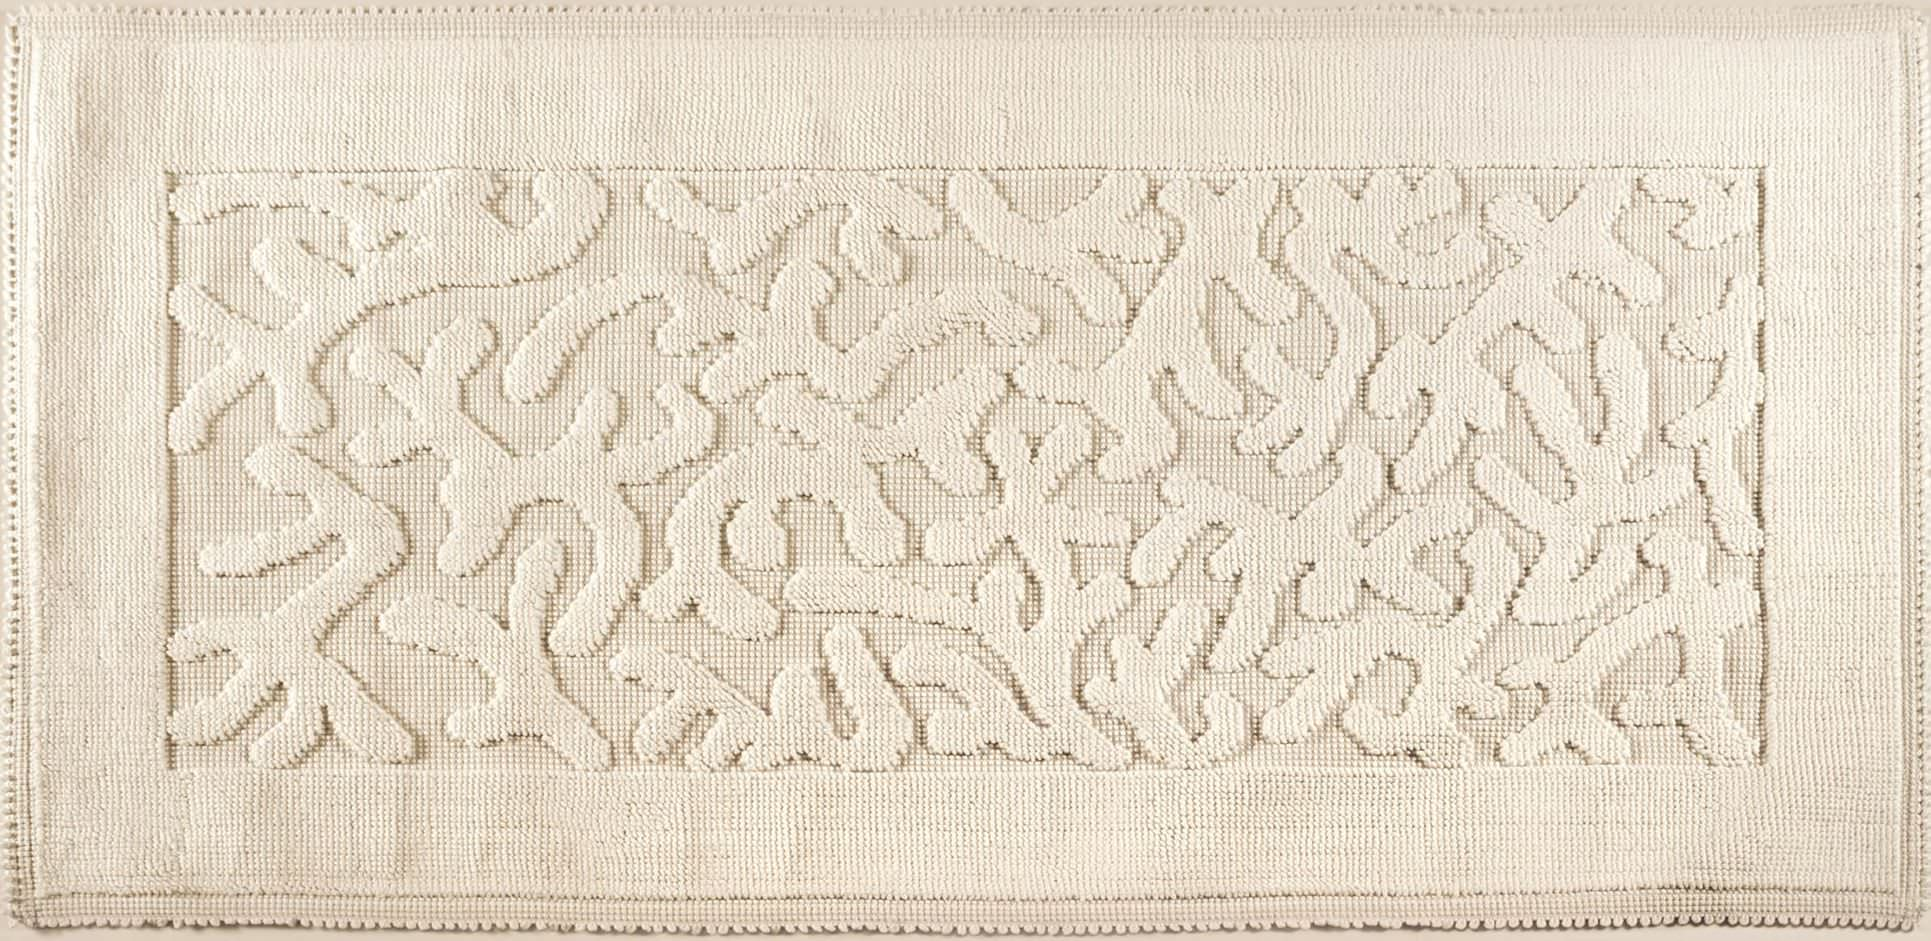 Contemporary rug / patterned / wool / rectangular - CORALLI - MASTRO ...